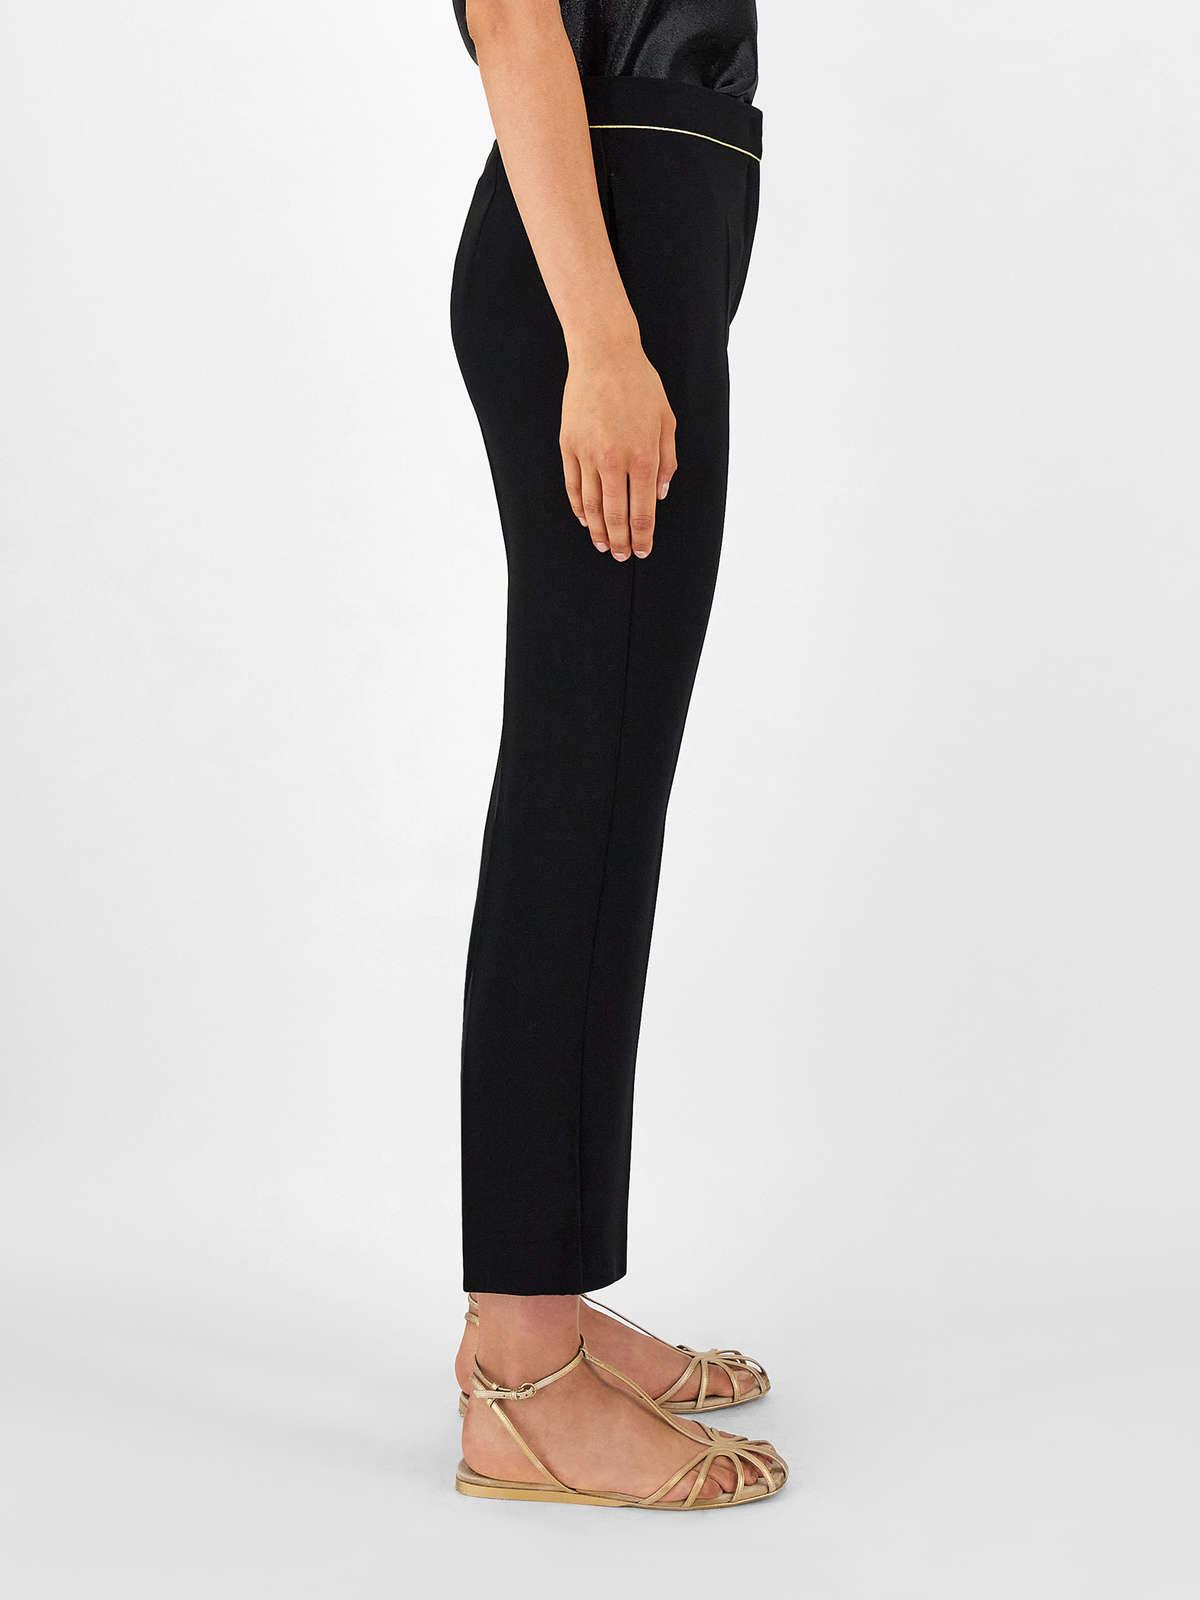 Womens Max Mara Trousers And Jeans | Cady Trousers Black